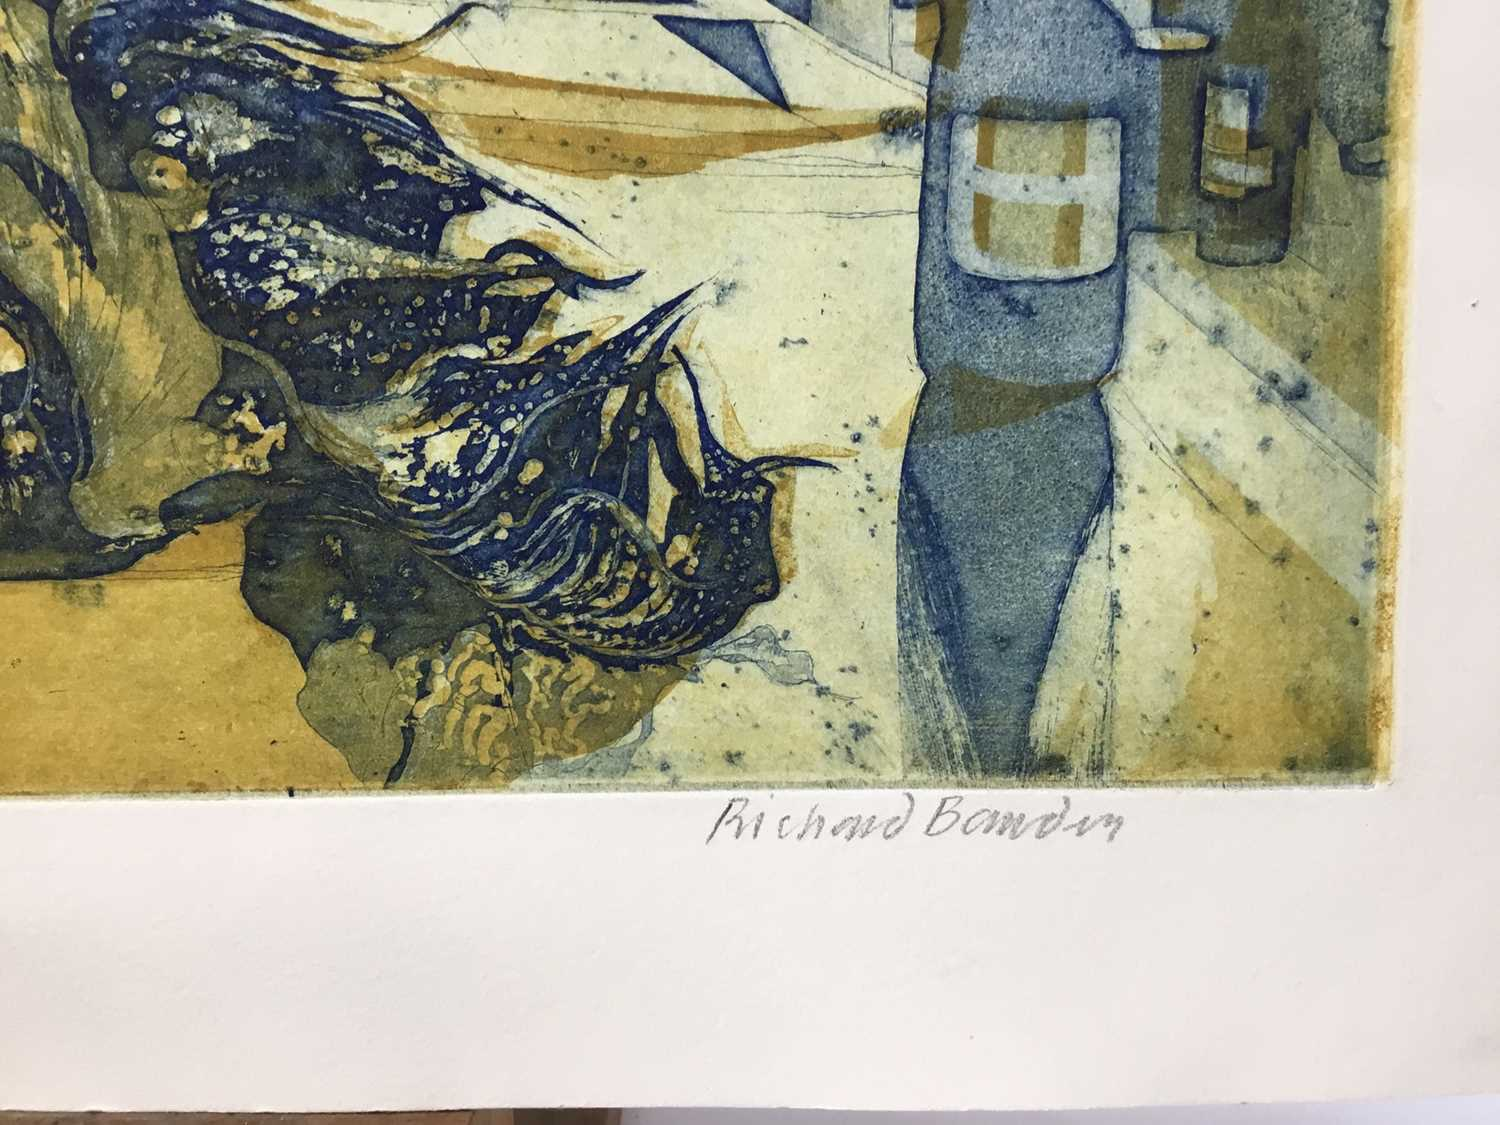 Richard Bawden (b. 1936) etching and aquatint in colours, Clutter, signed, artists proof, unframed. - Image 3 of 4